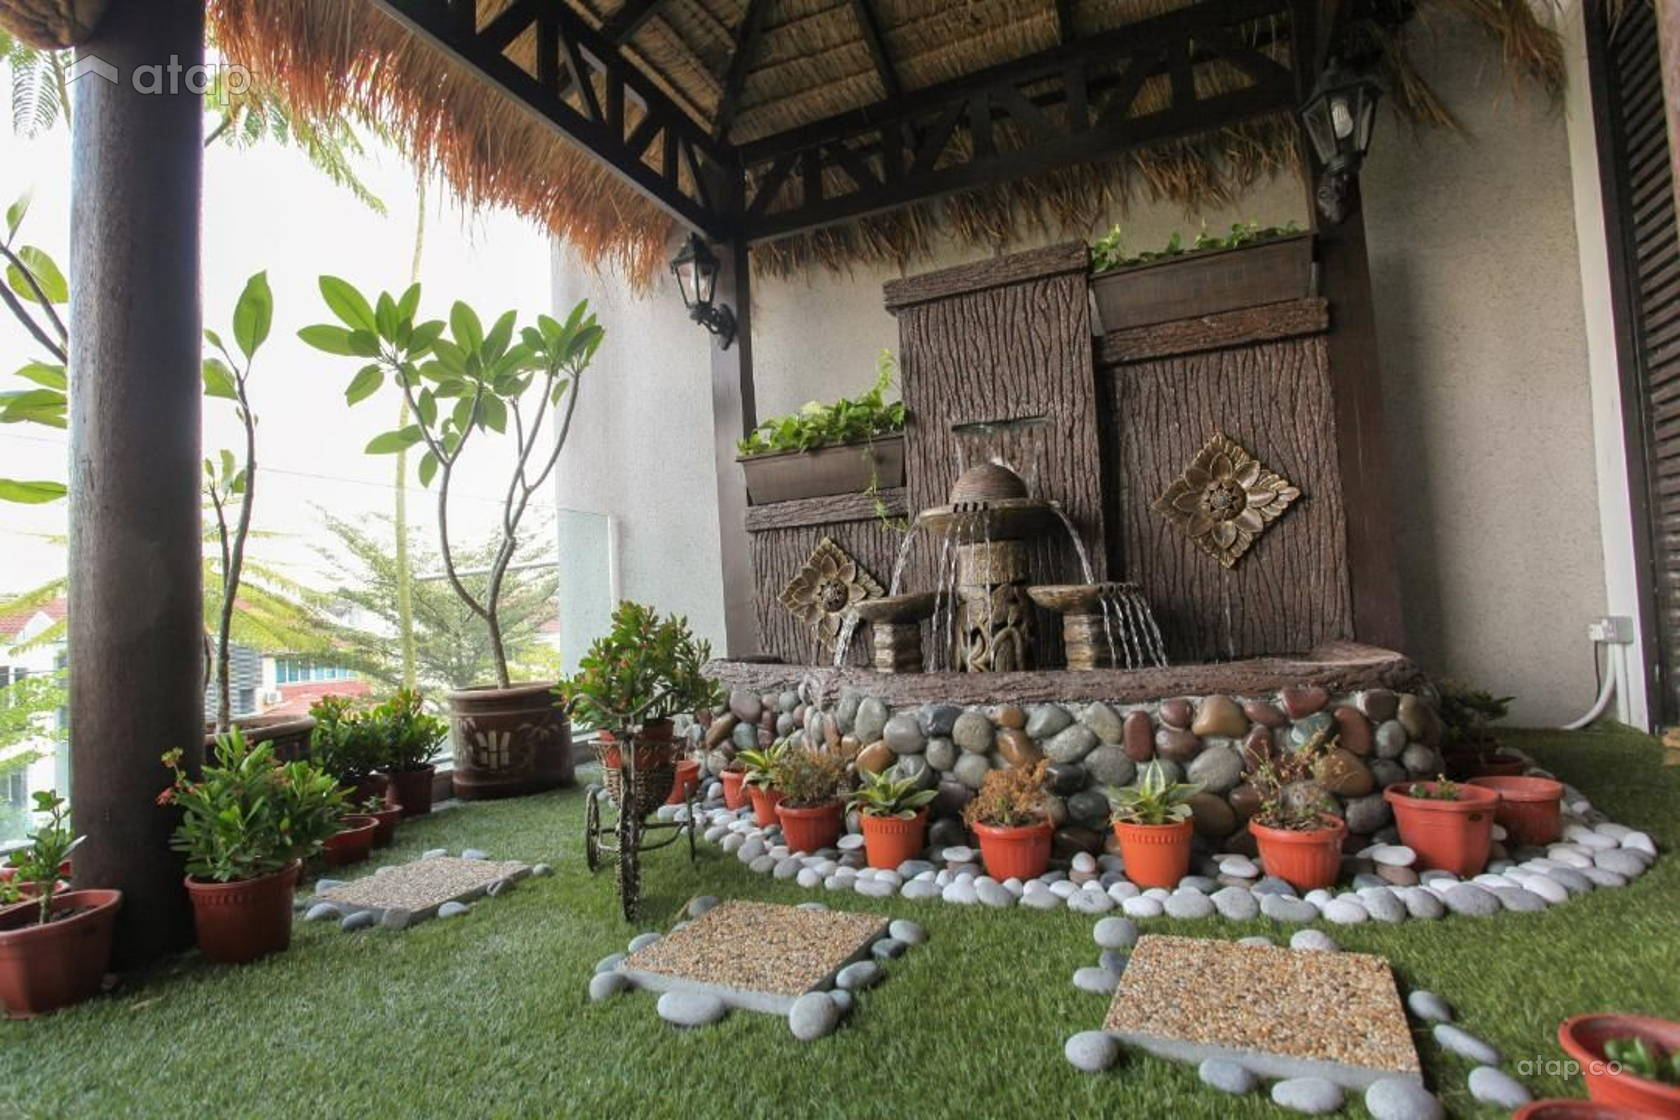 Malaysian Home Garden Ideas to Inspire Your Space | Atap.co